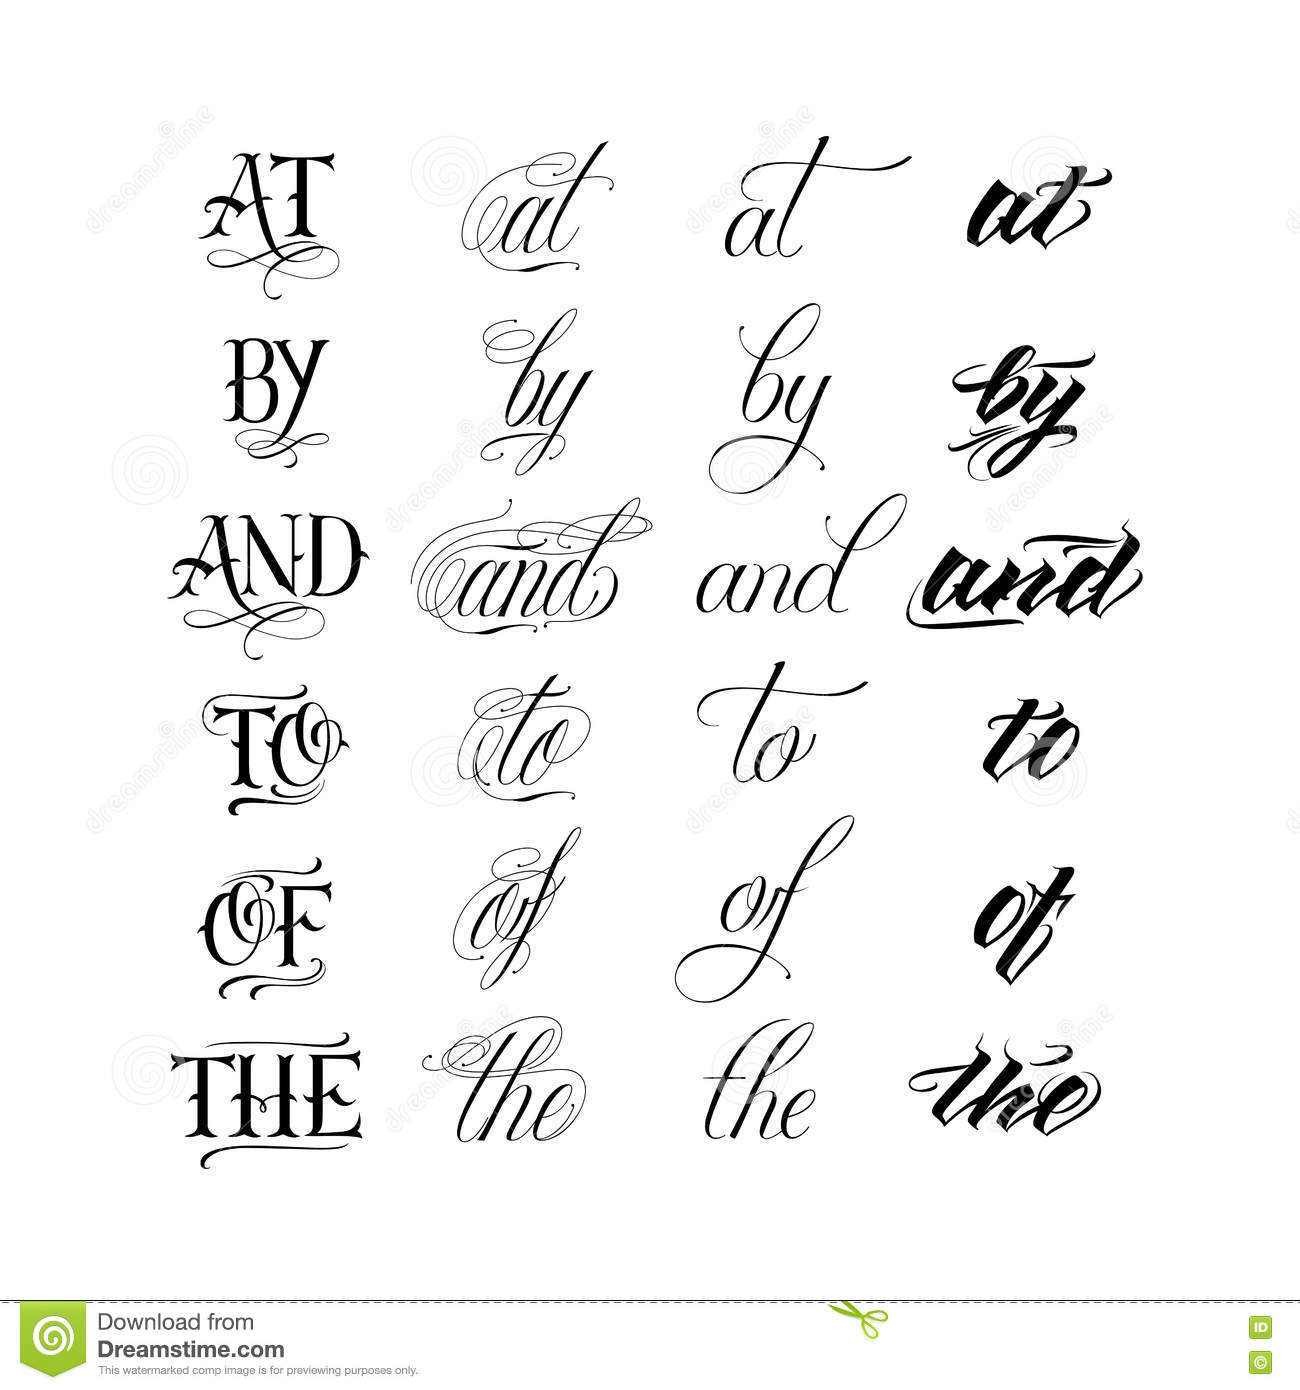 Calligraphy Tattoo Picture Calligraphic Tattoo Lettering Set Stock Vector Illustration Of